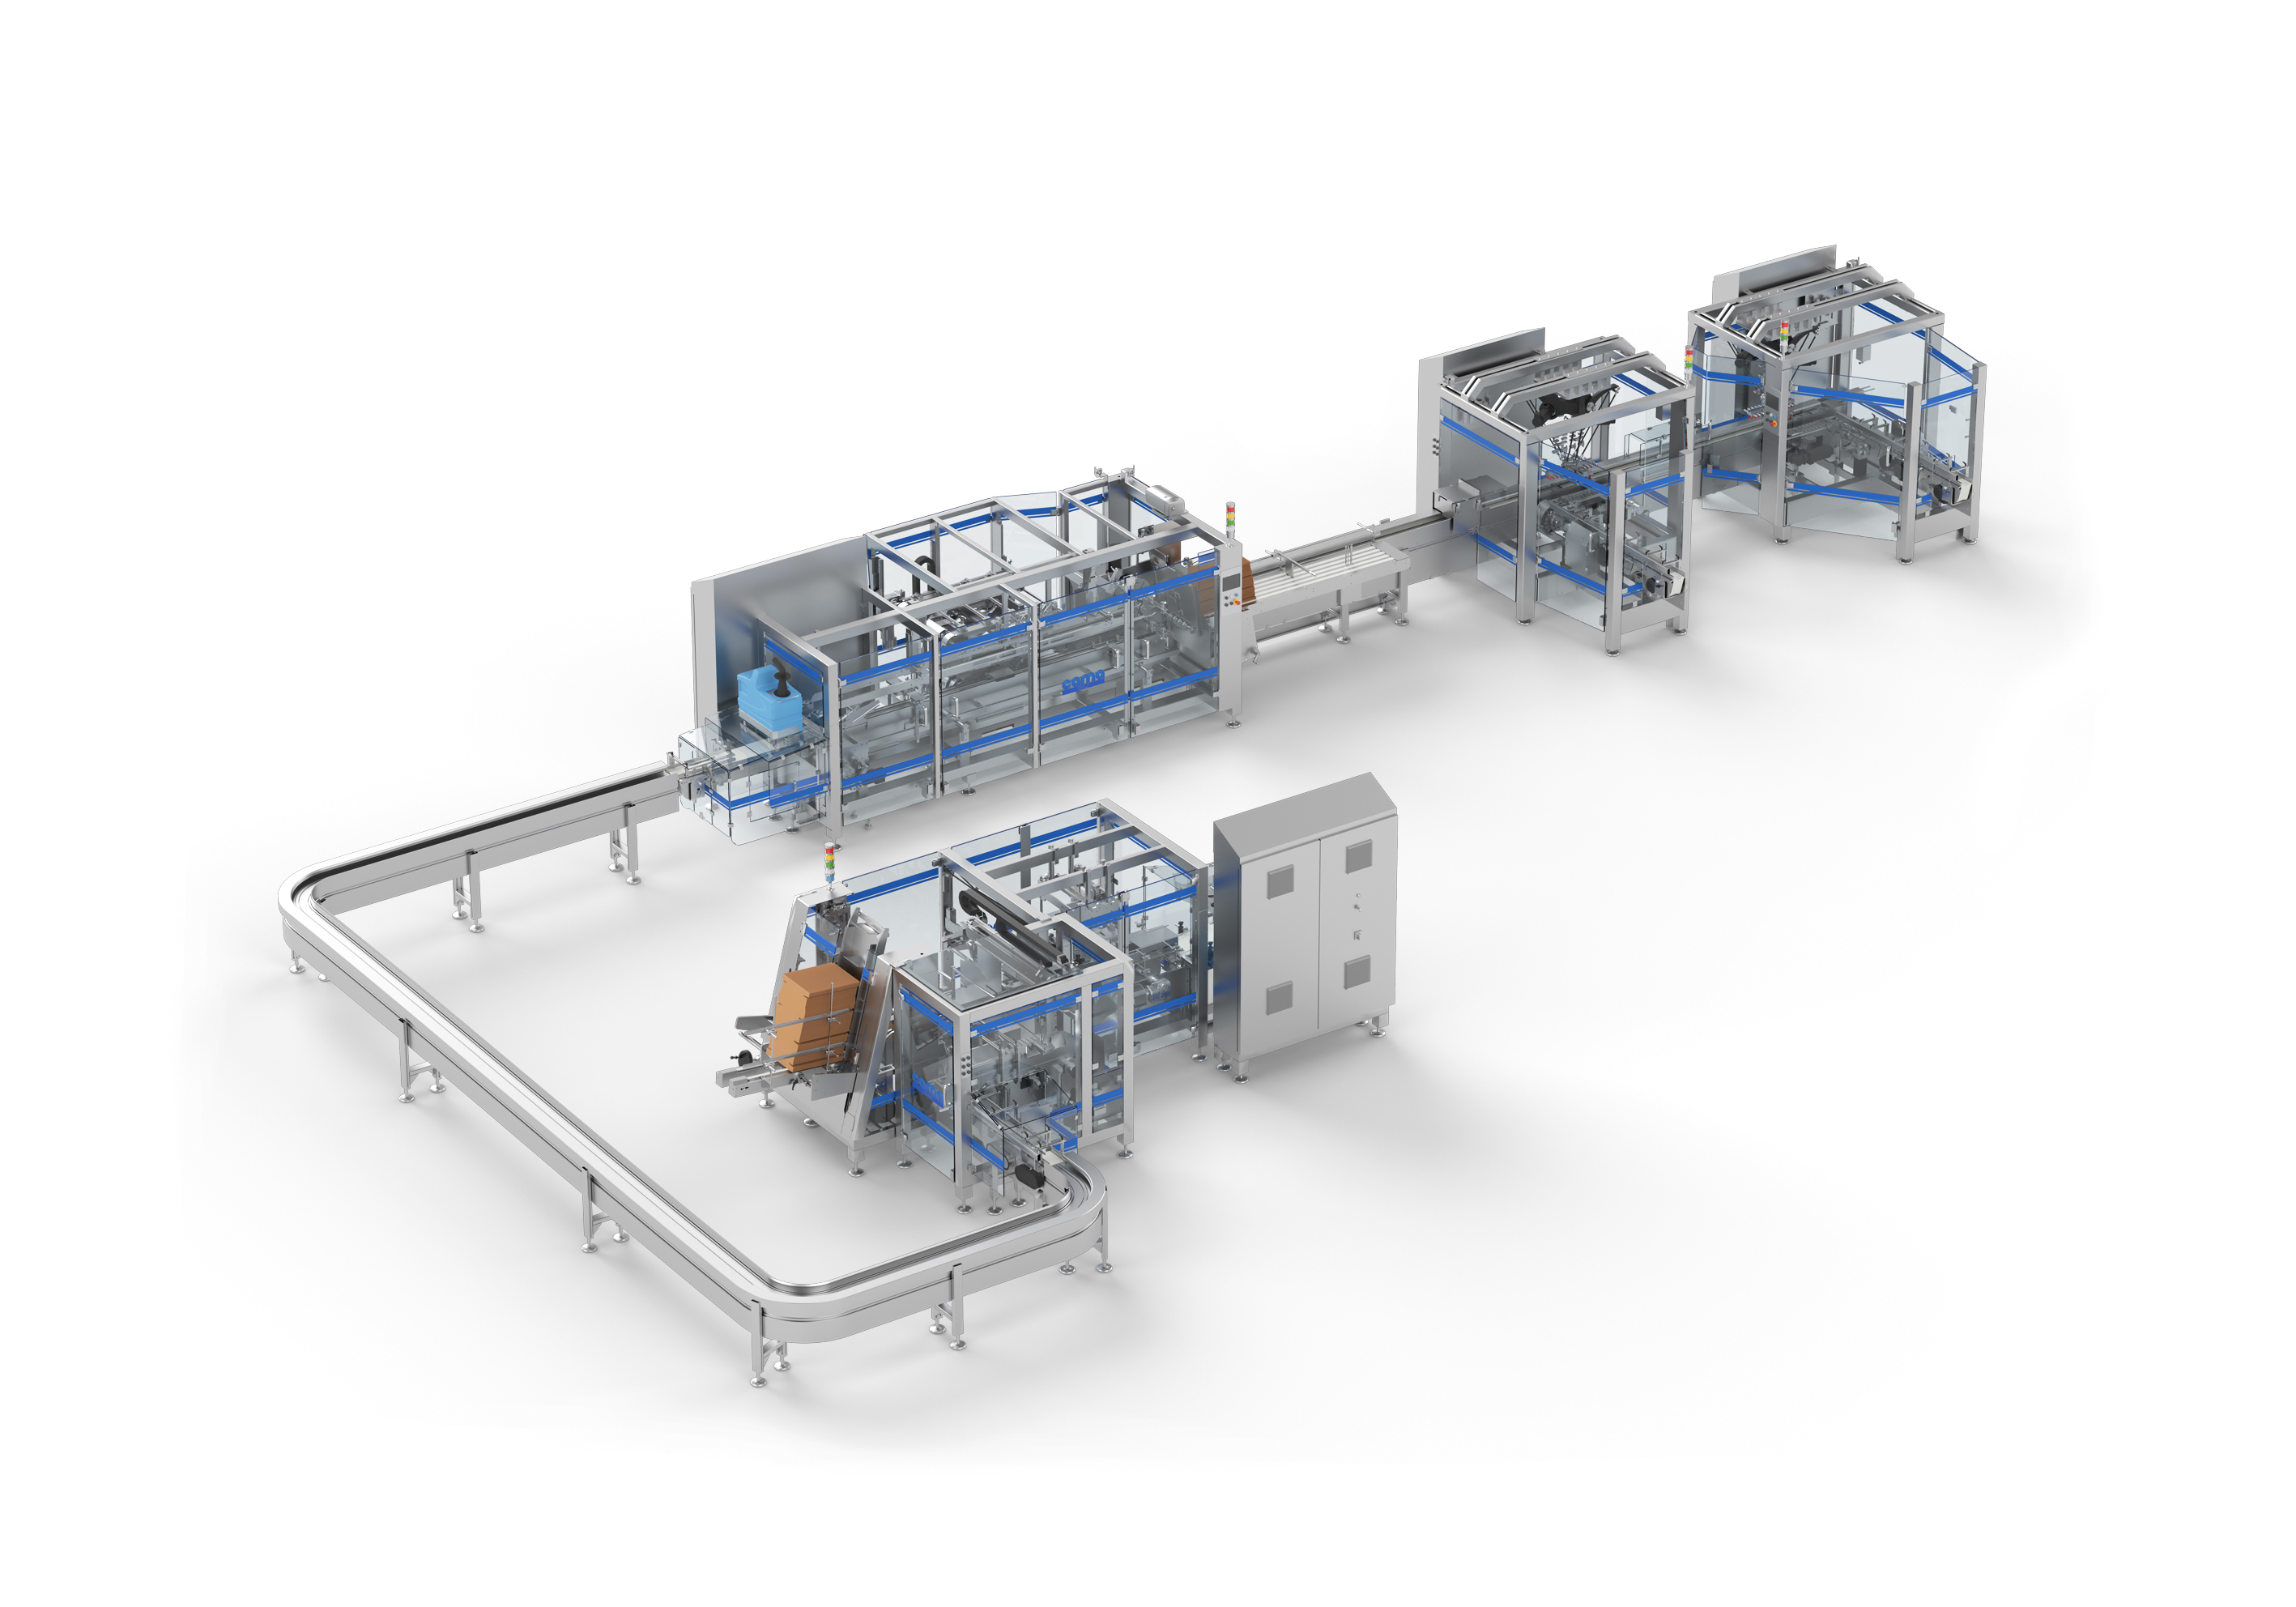 Triaflex delta robots and dried fruits packaging: a successful story